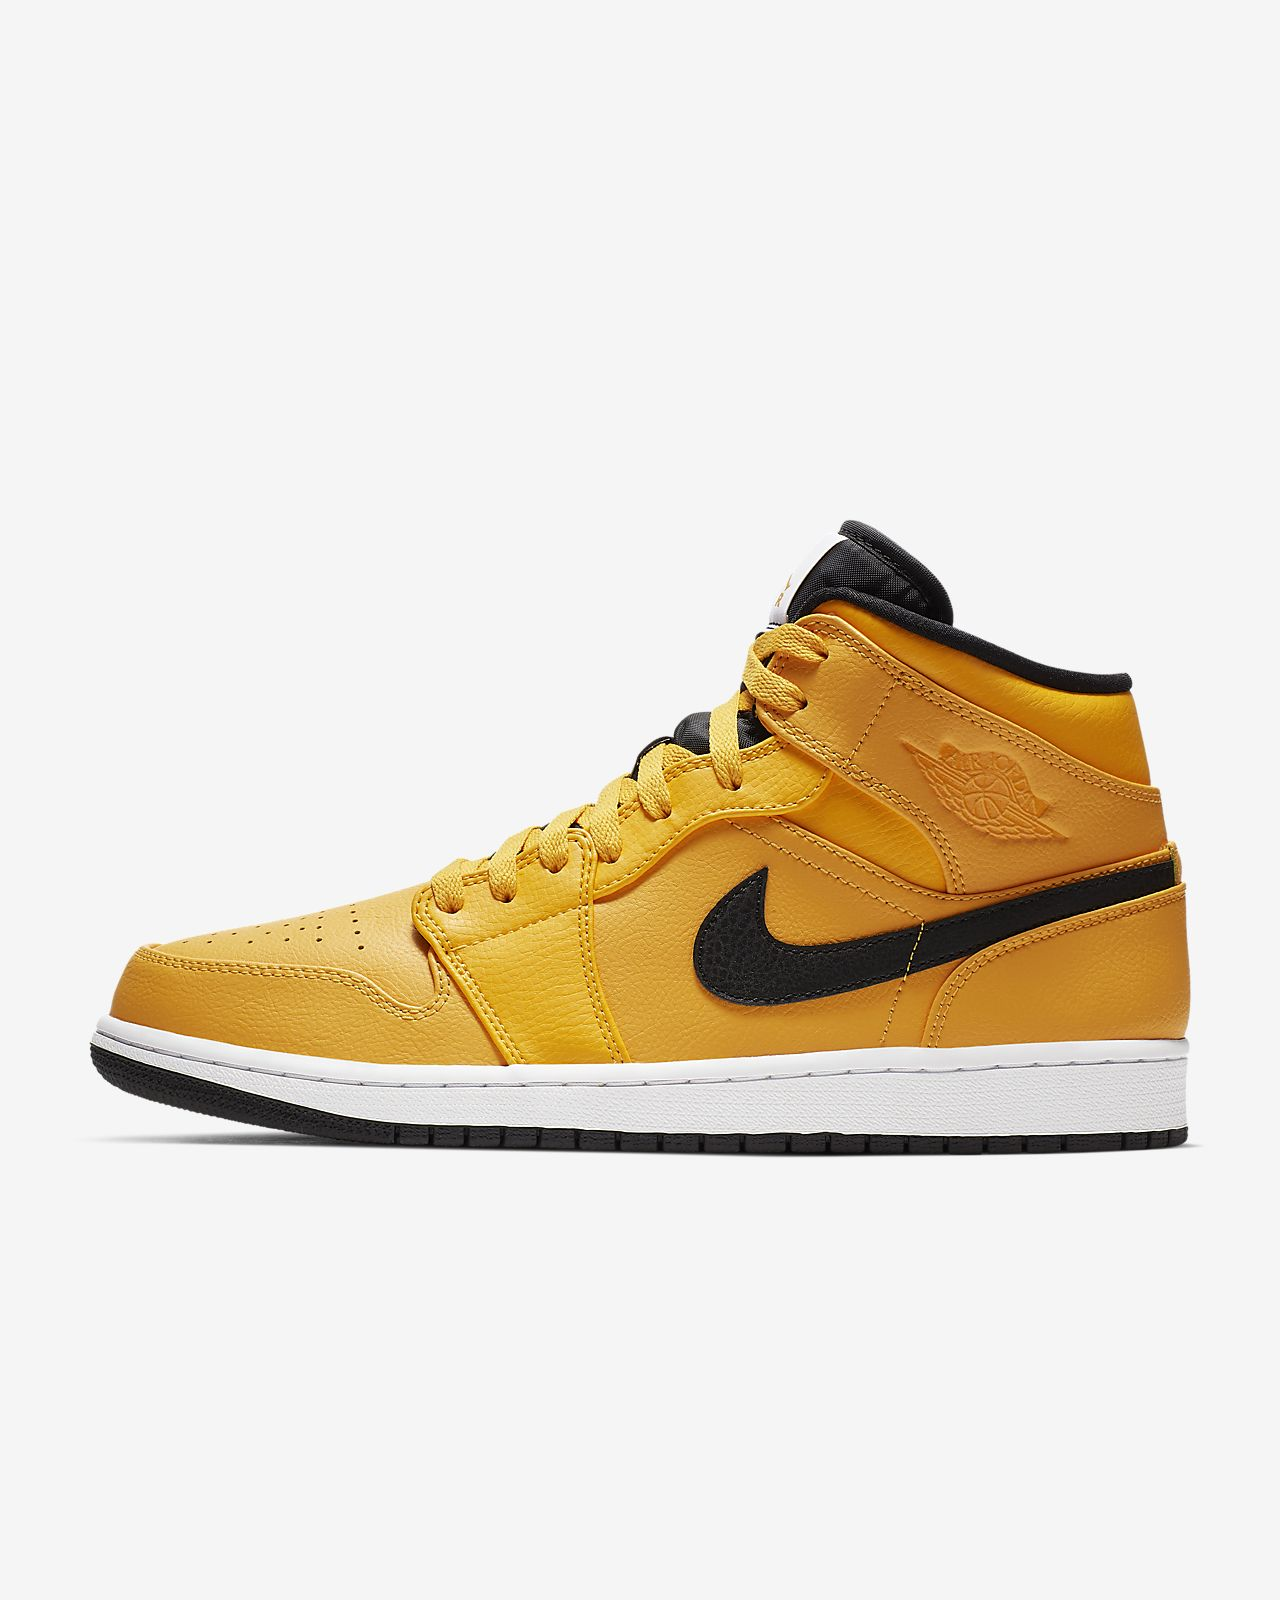 pick up 44206 19fa2 ... Air Jordan 1 Mid Men s Shoe